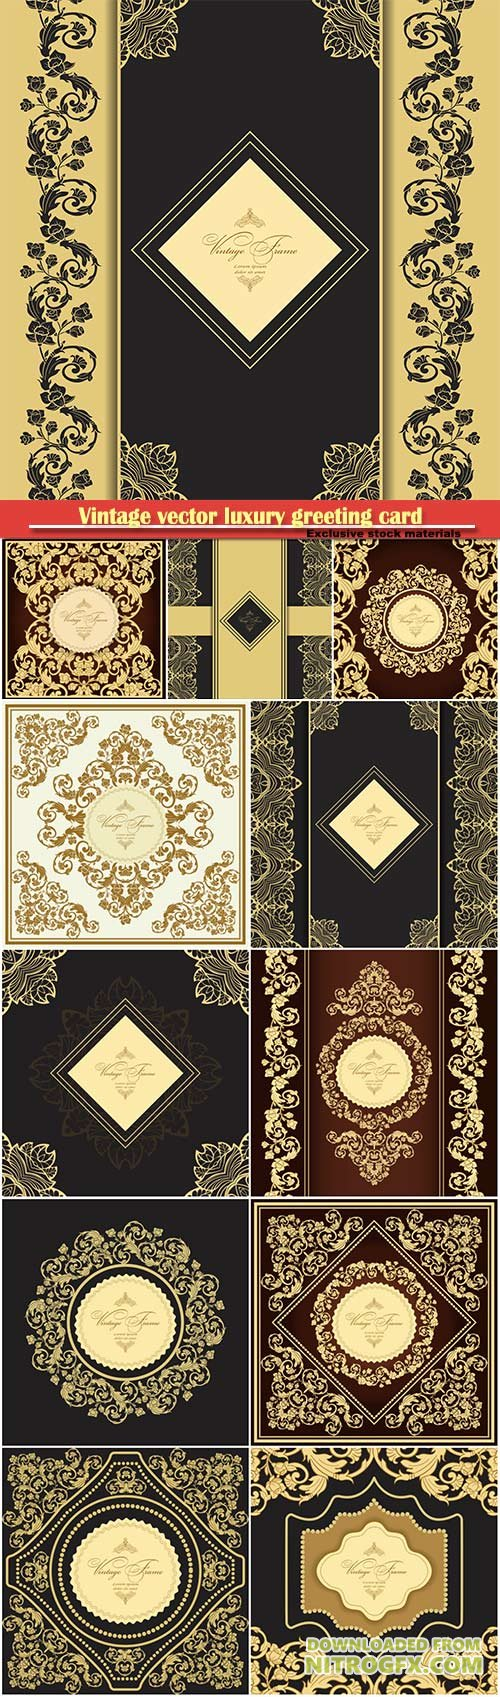 Vintage vector luxury greeting card, ornate gold border